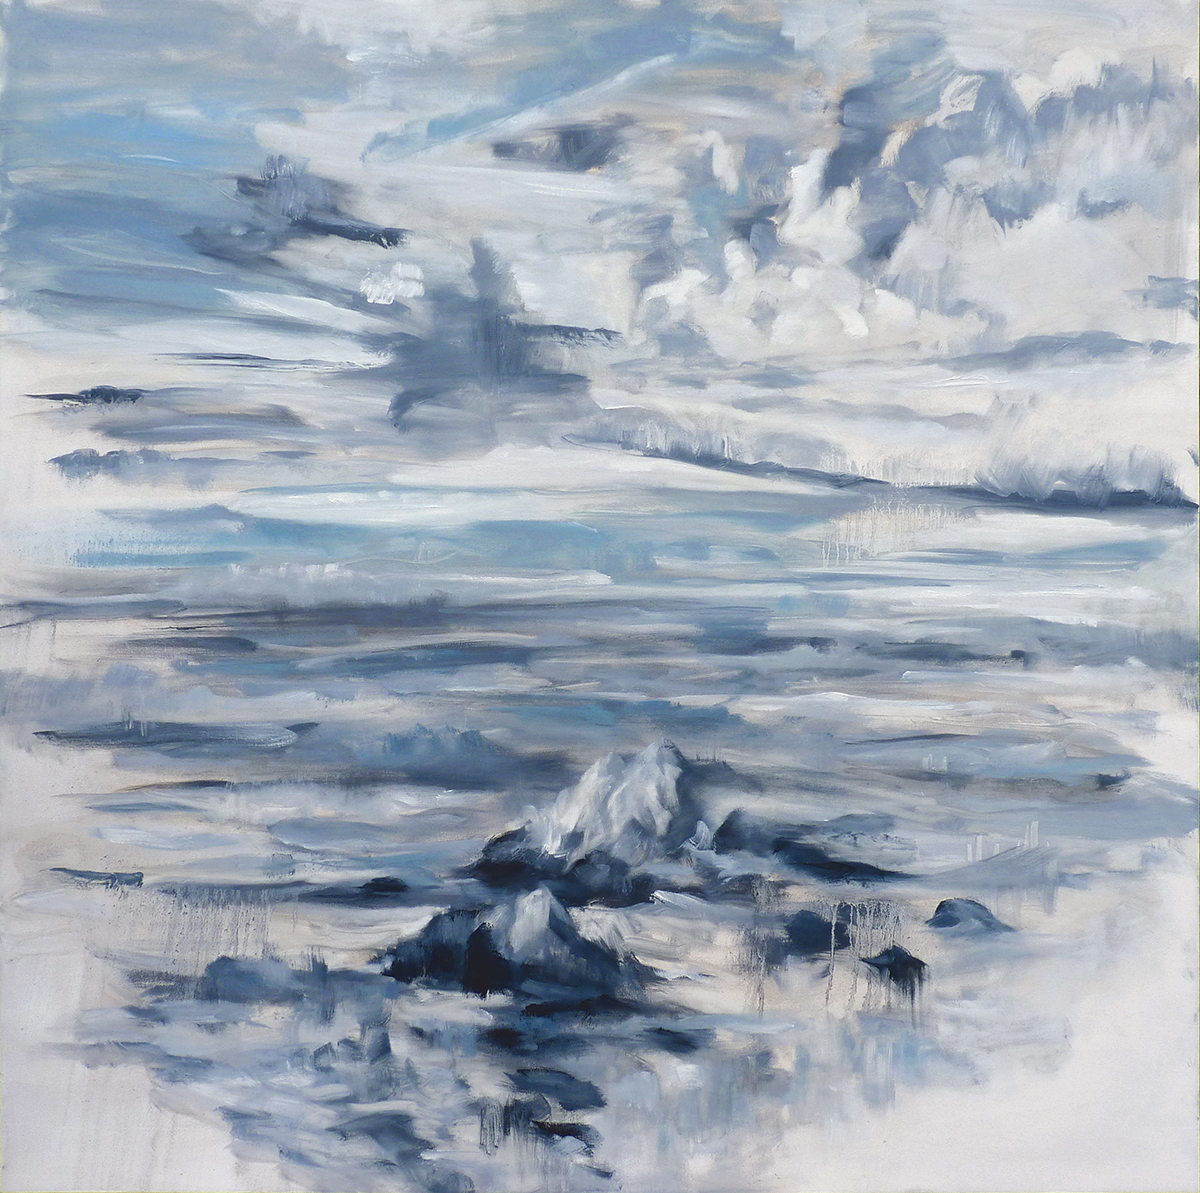 Dappled Skies  48 x 48 in. oil on canvas 2019